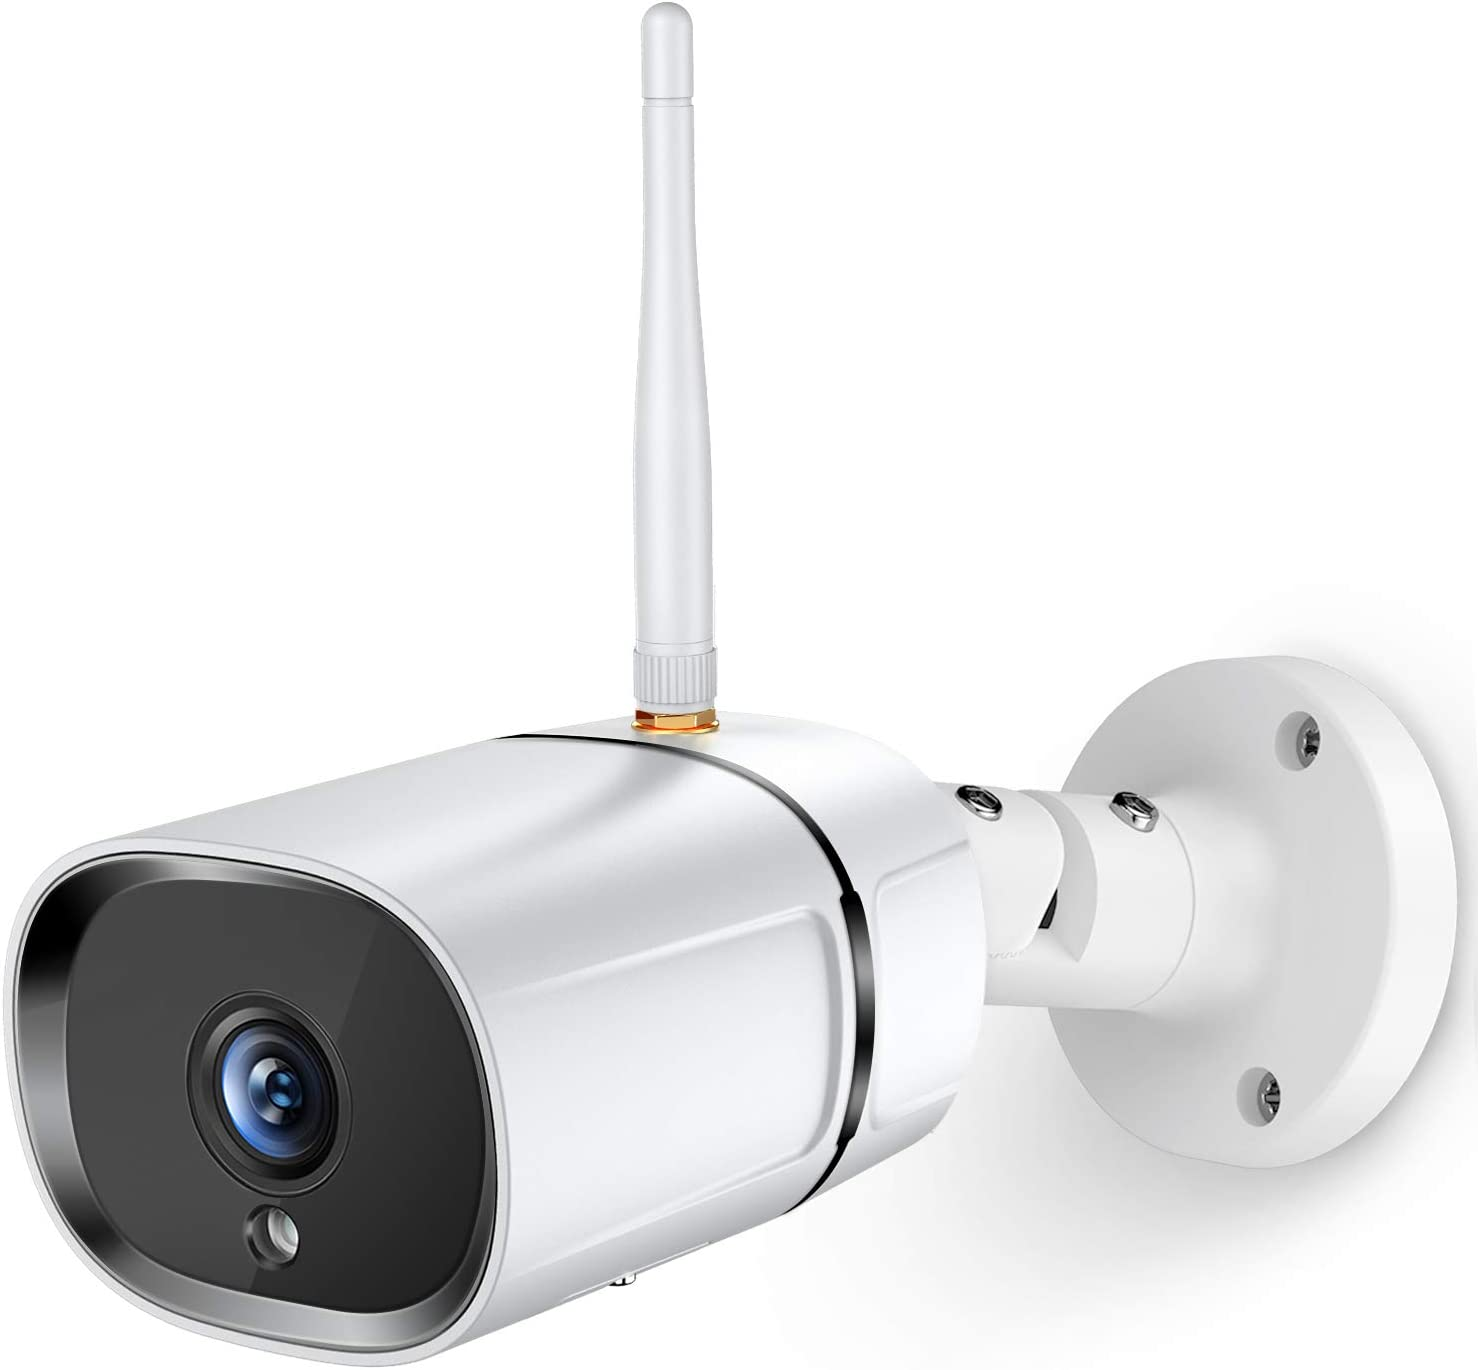 Security Camera Outdoor, WiFi Camera Waterproof Home Security Camera 1080P IP Surveillance Camera with Night Vision, Two-Way Audio Motion Detection, Works with Alexa & Google Home, TuyaSmart Phone APP